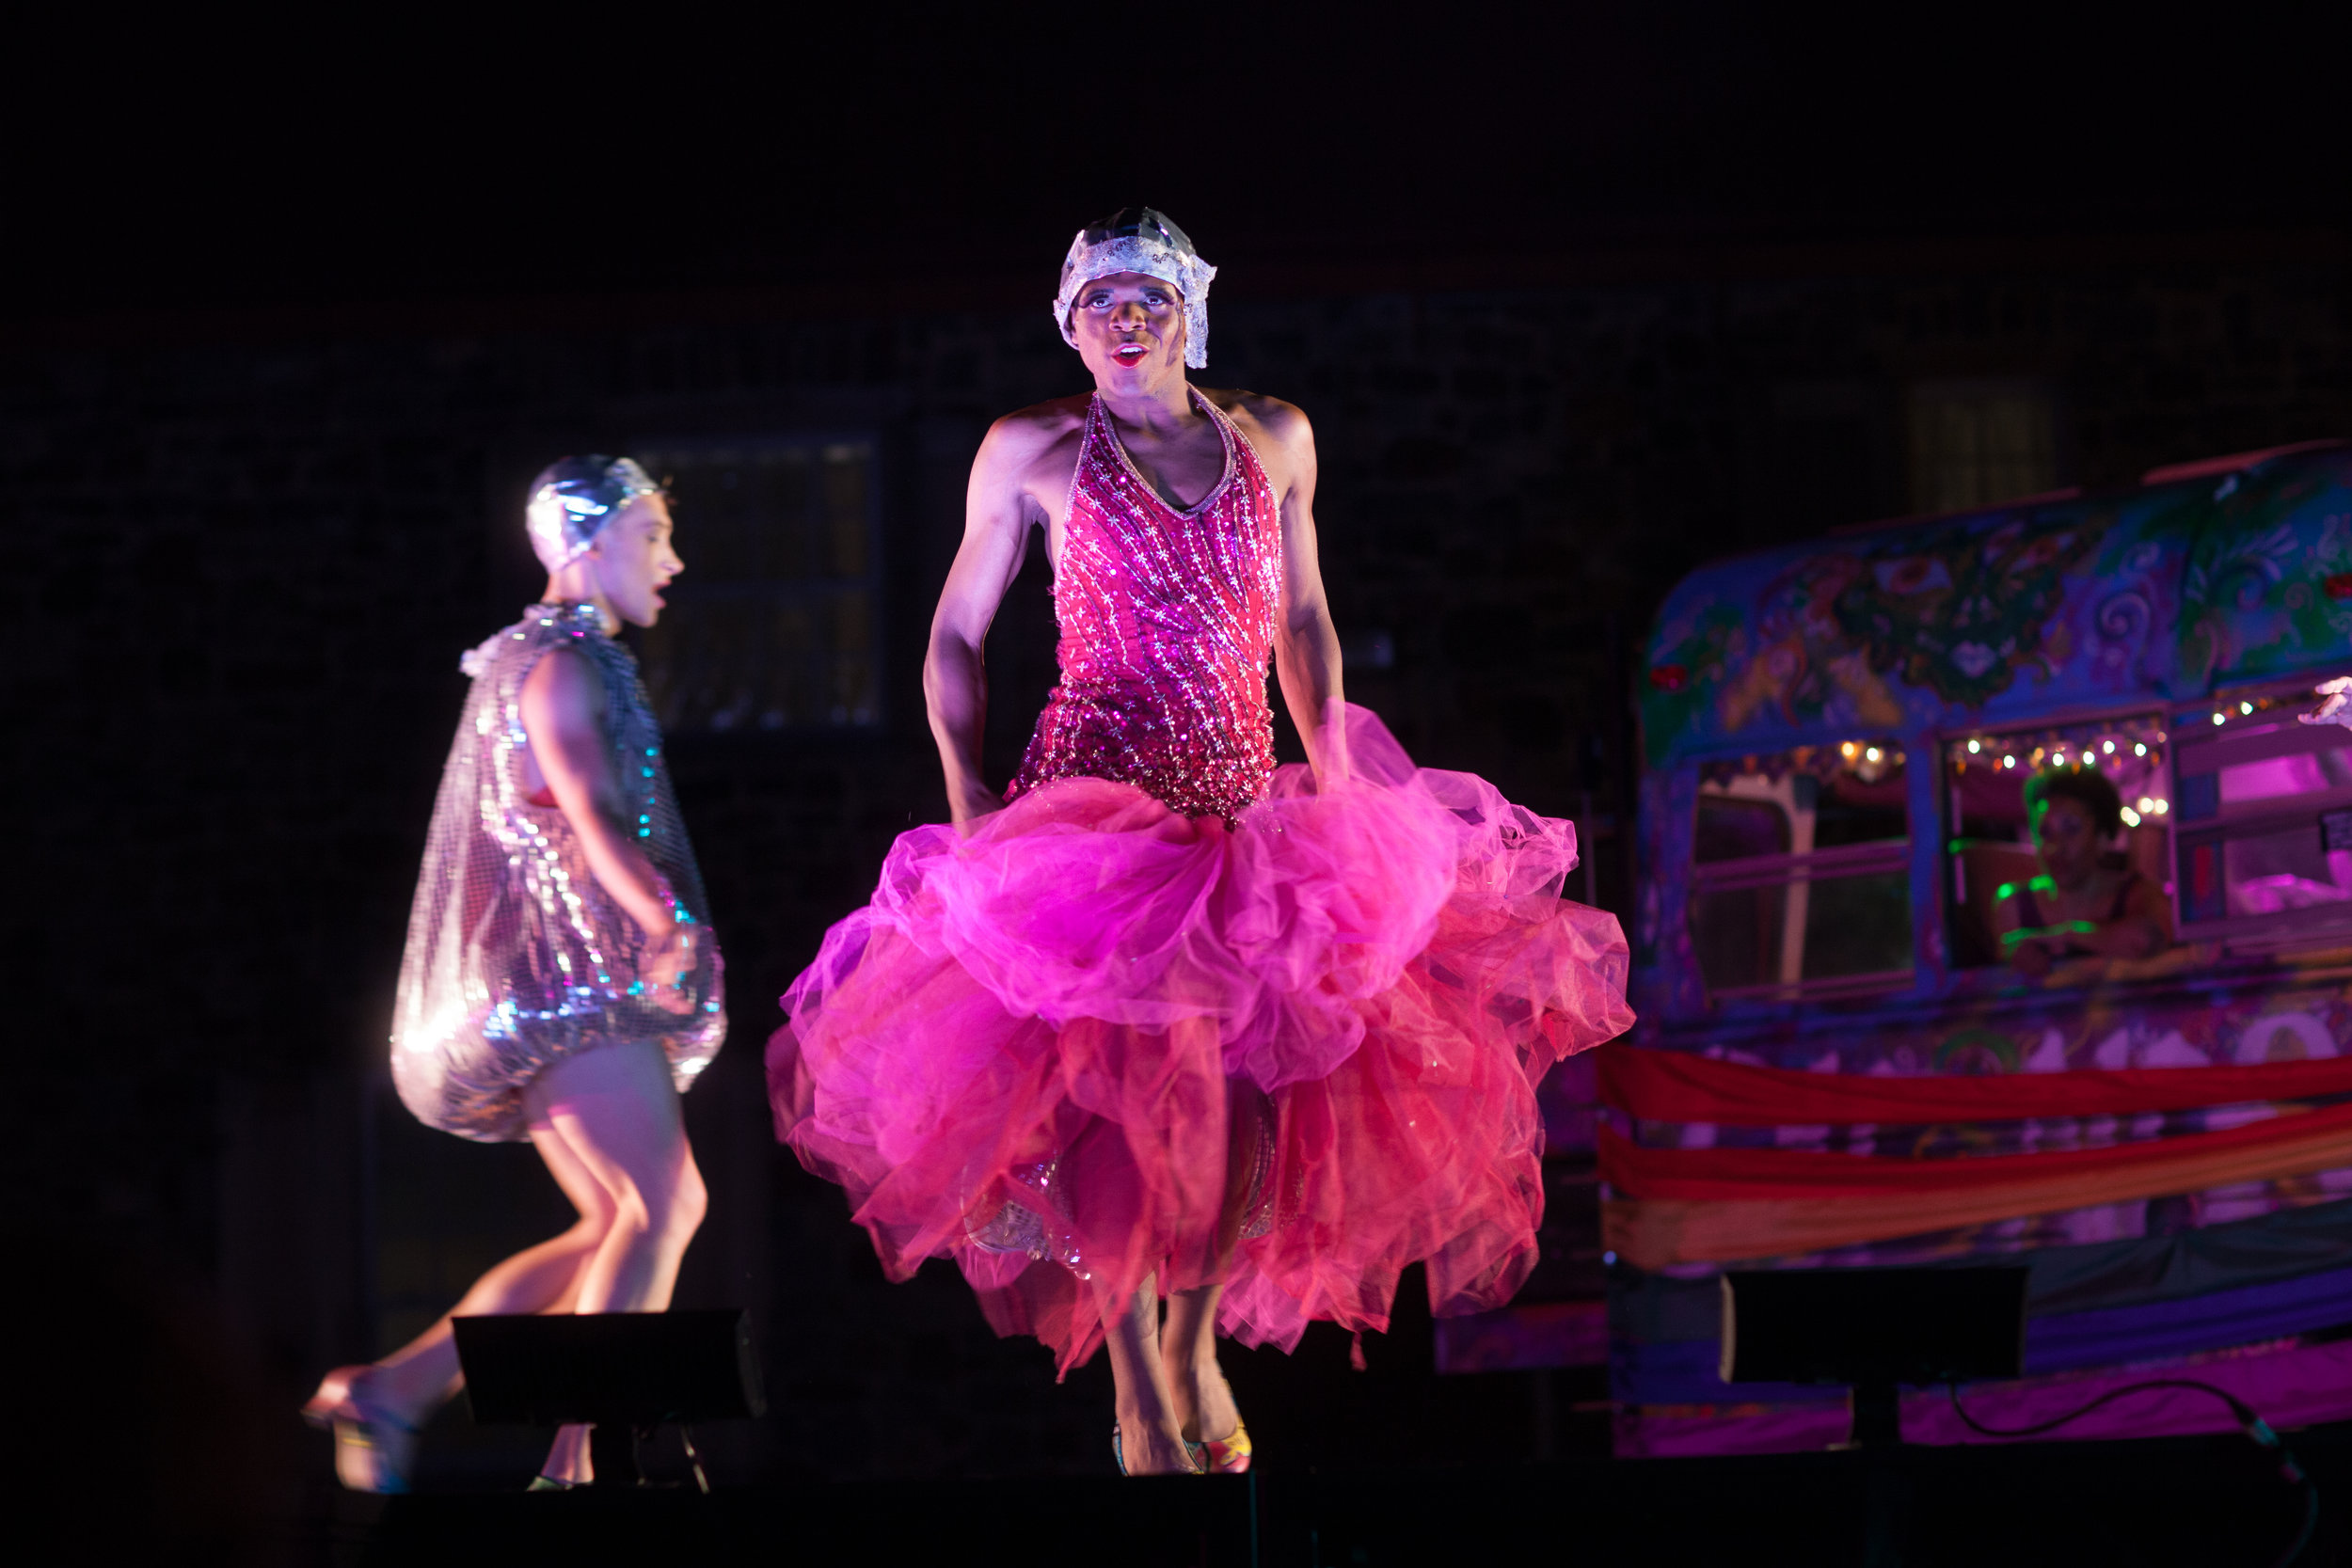 The Adventures of Priscilla, Queen of the Desert - Directed by John P. McEneny